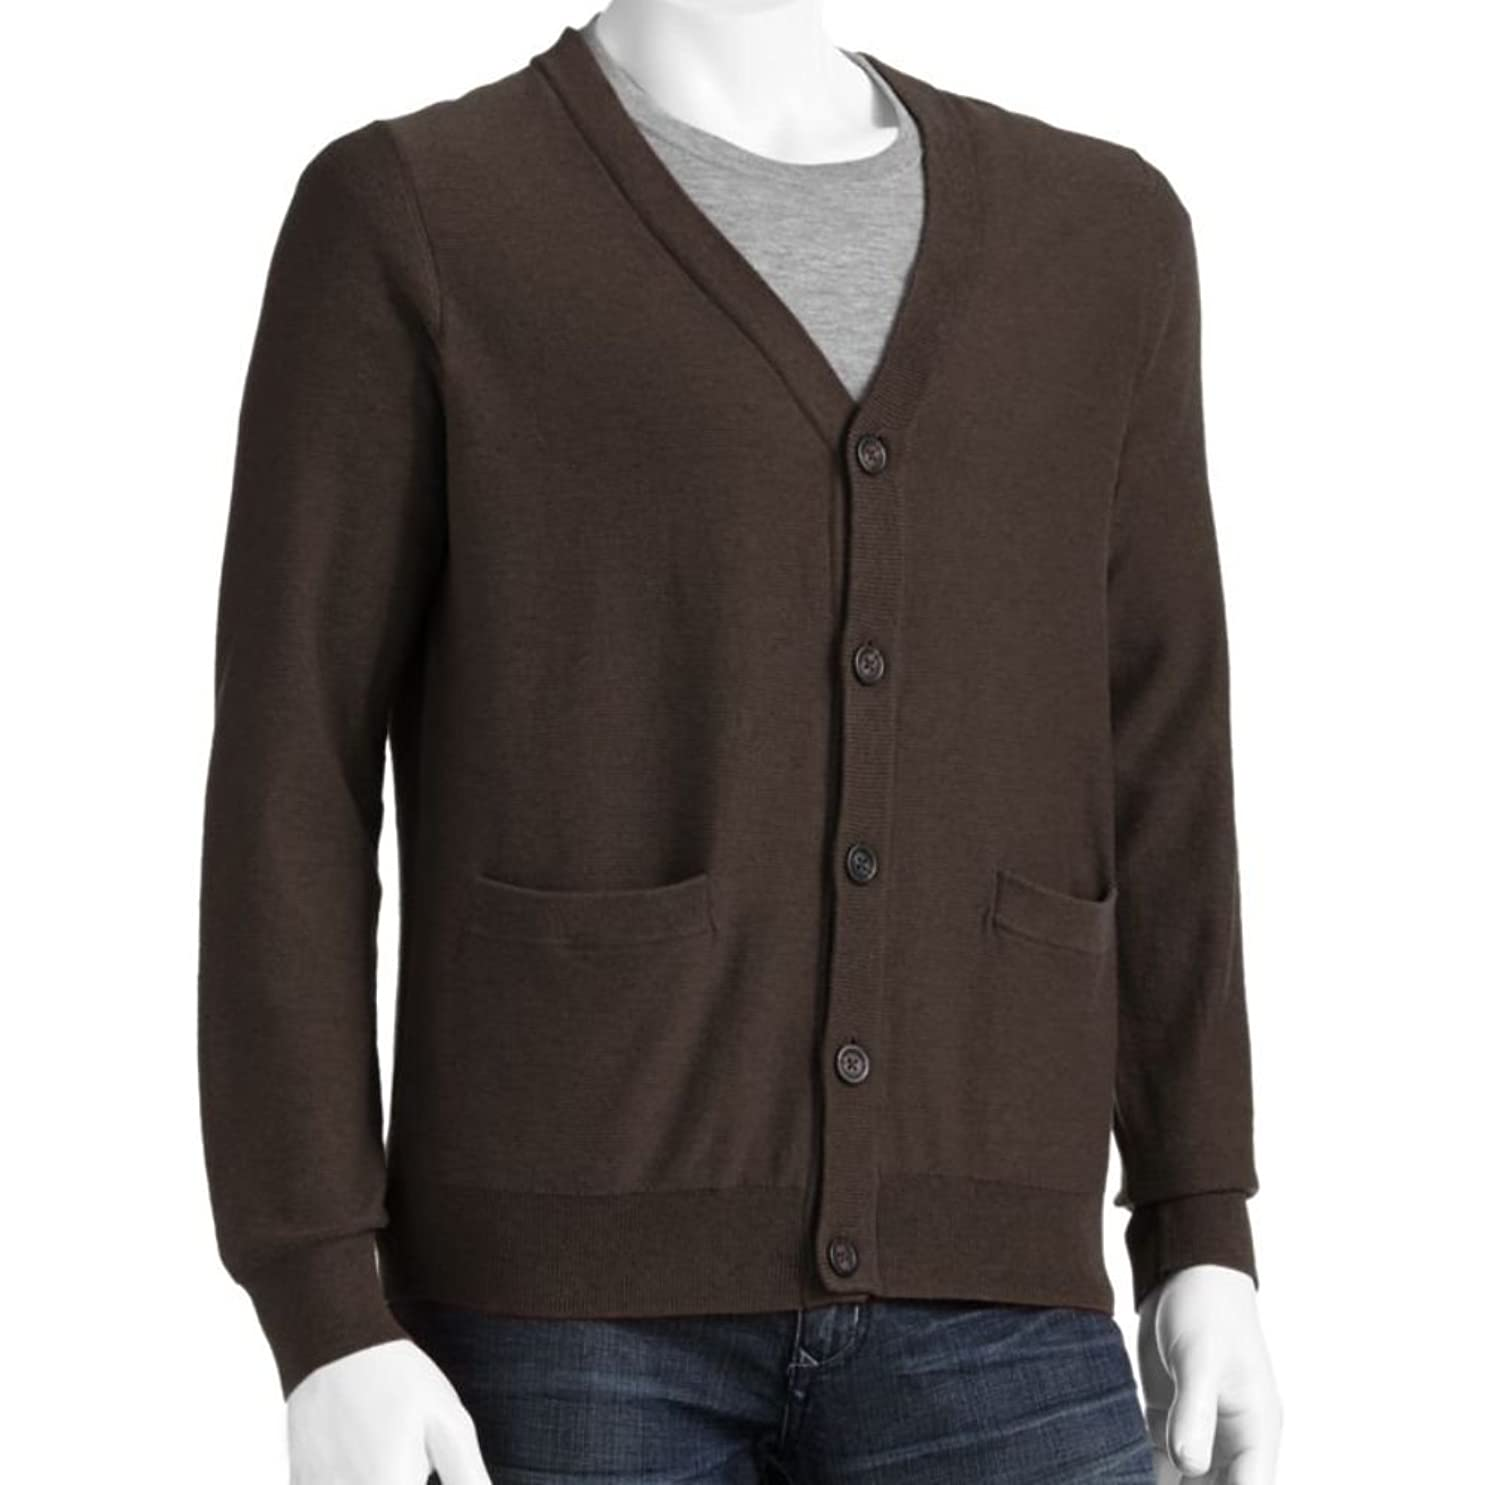 Sonoma Mens Cardigan 100% Cotton Sweater Large Tall LT Brown at ...